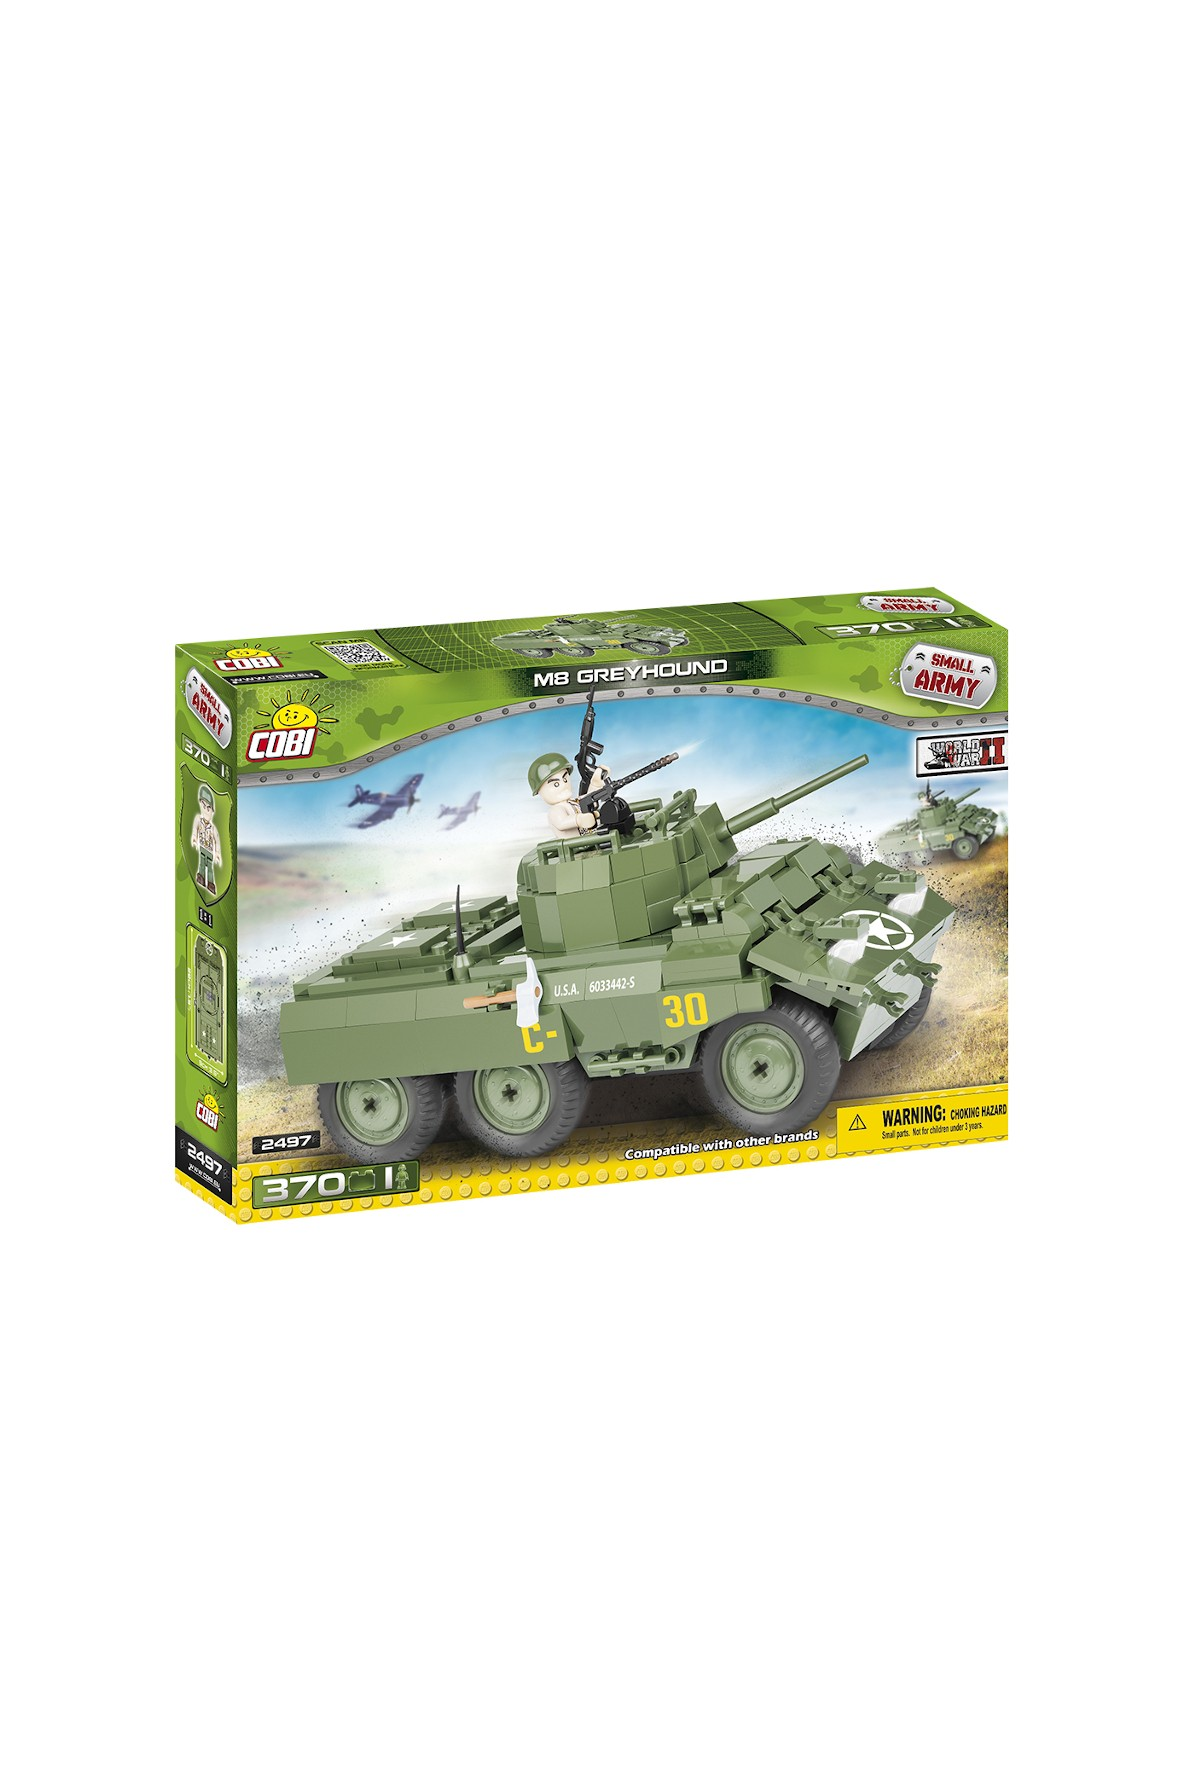 Klocki Cobi Small Army M8 GREYHOUND 370el